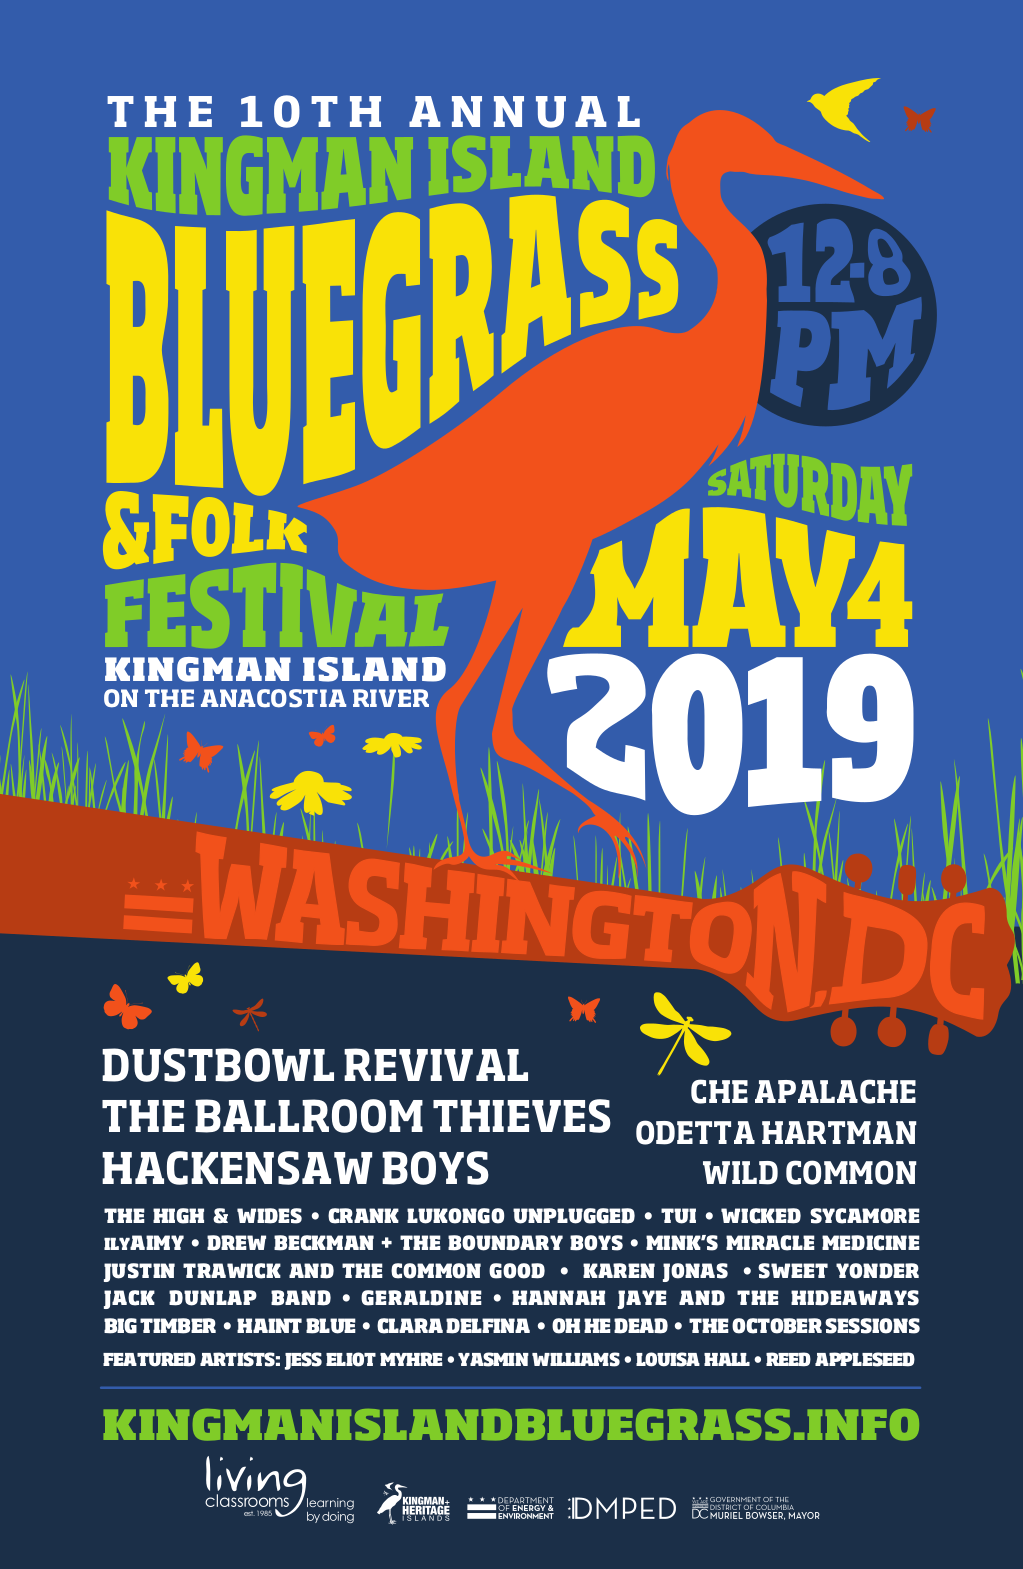 10th Annual Kingman Island Bluegrass & Folk Festival